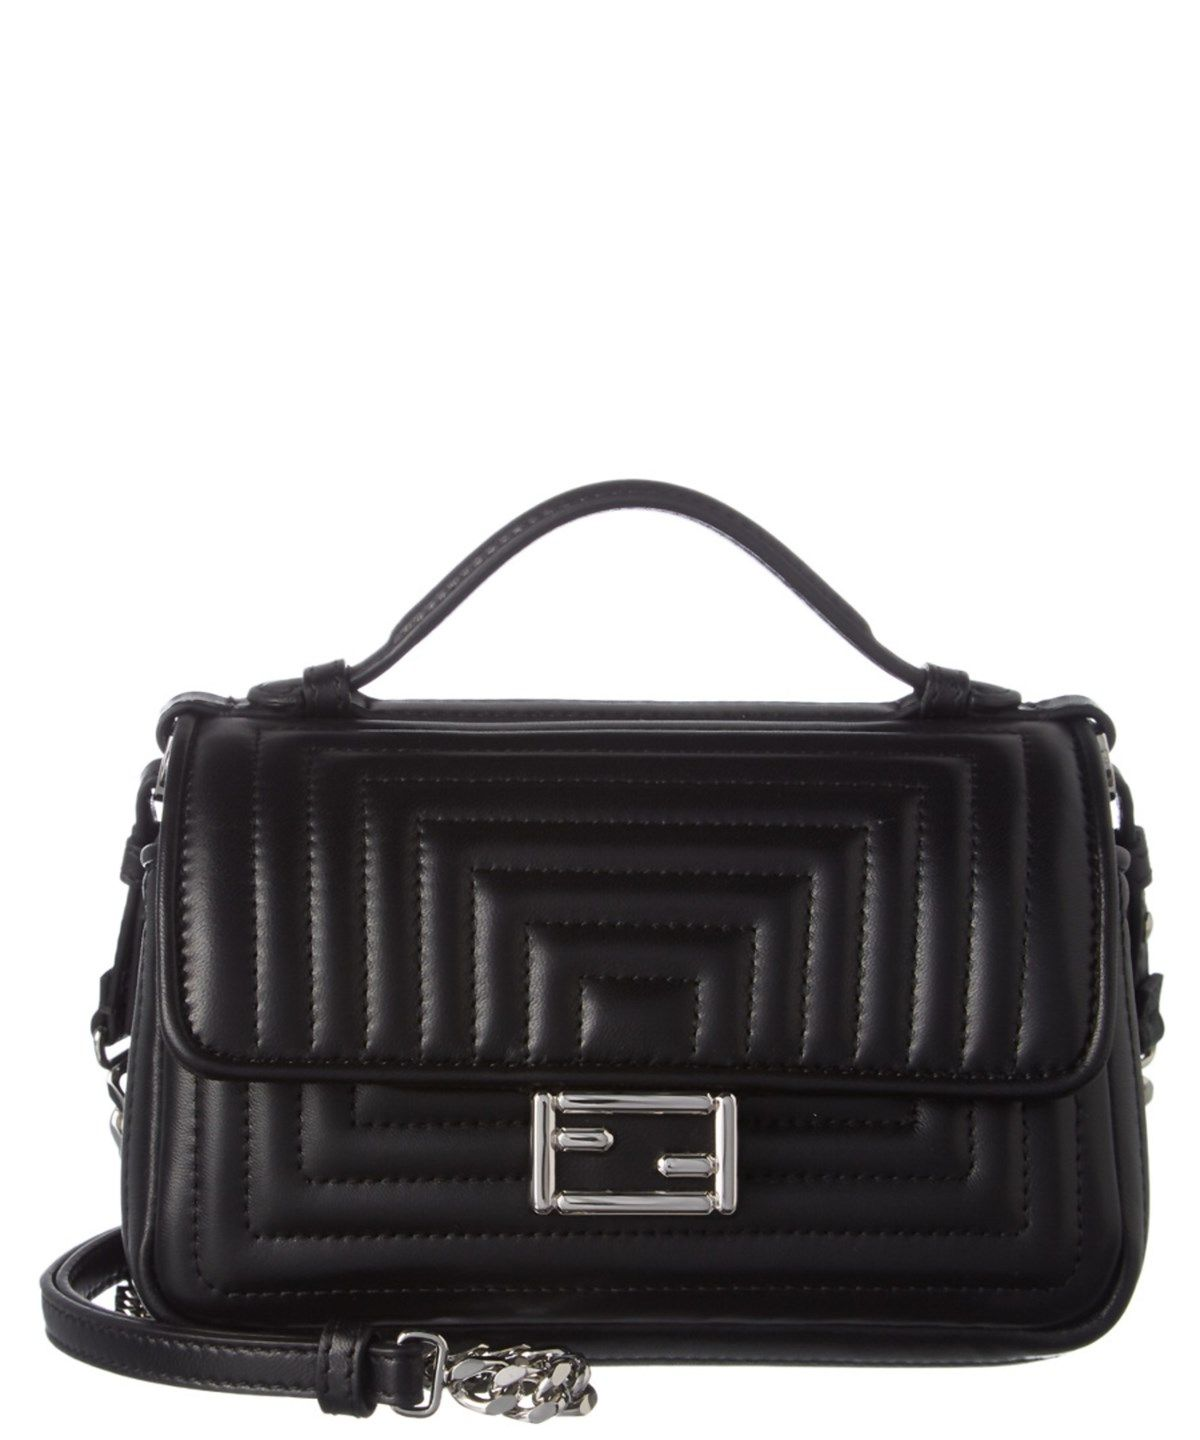 d503af6580e2 FENDI FENDI DOUBLE MICRO QUILTED LEATHER BAGUETTE .  fendi  bags  shoulder  bags  hand bags  leather  lining